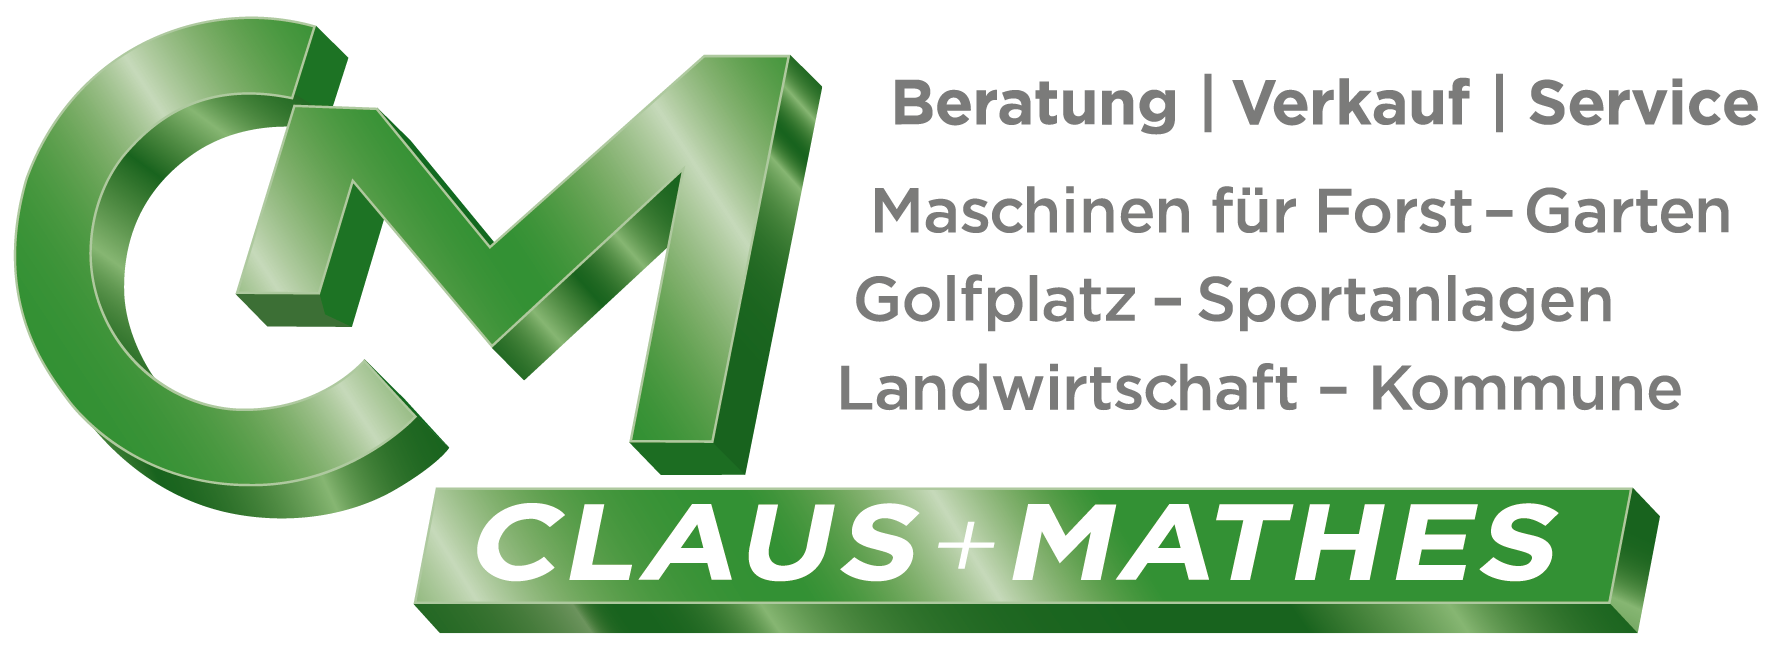 Claus & Mathes GmbH